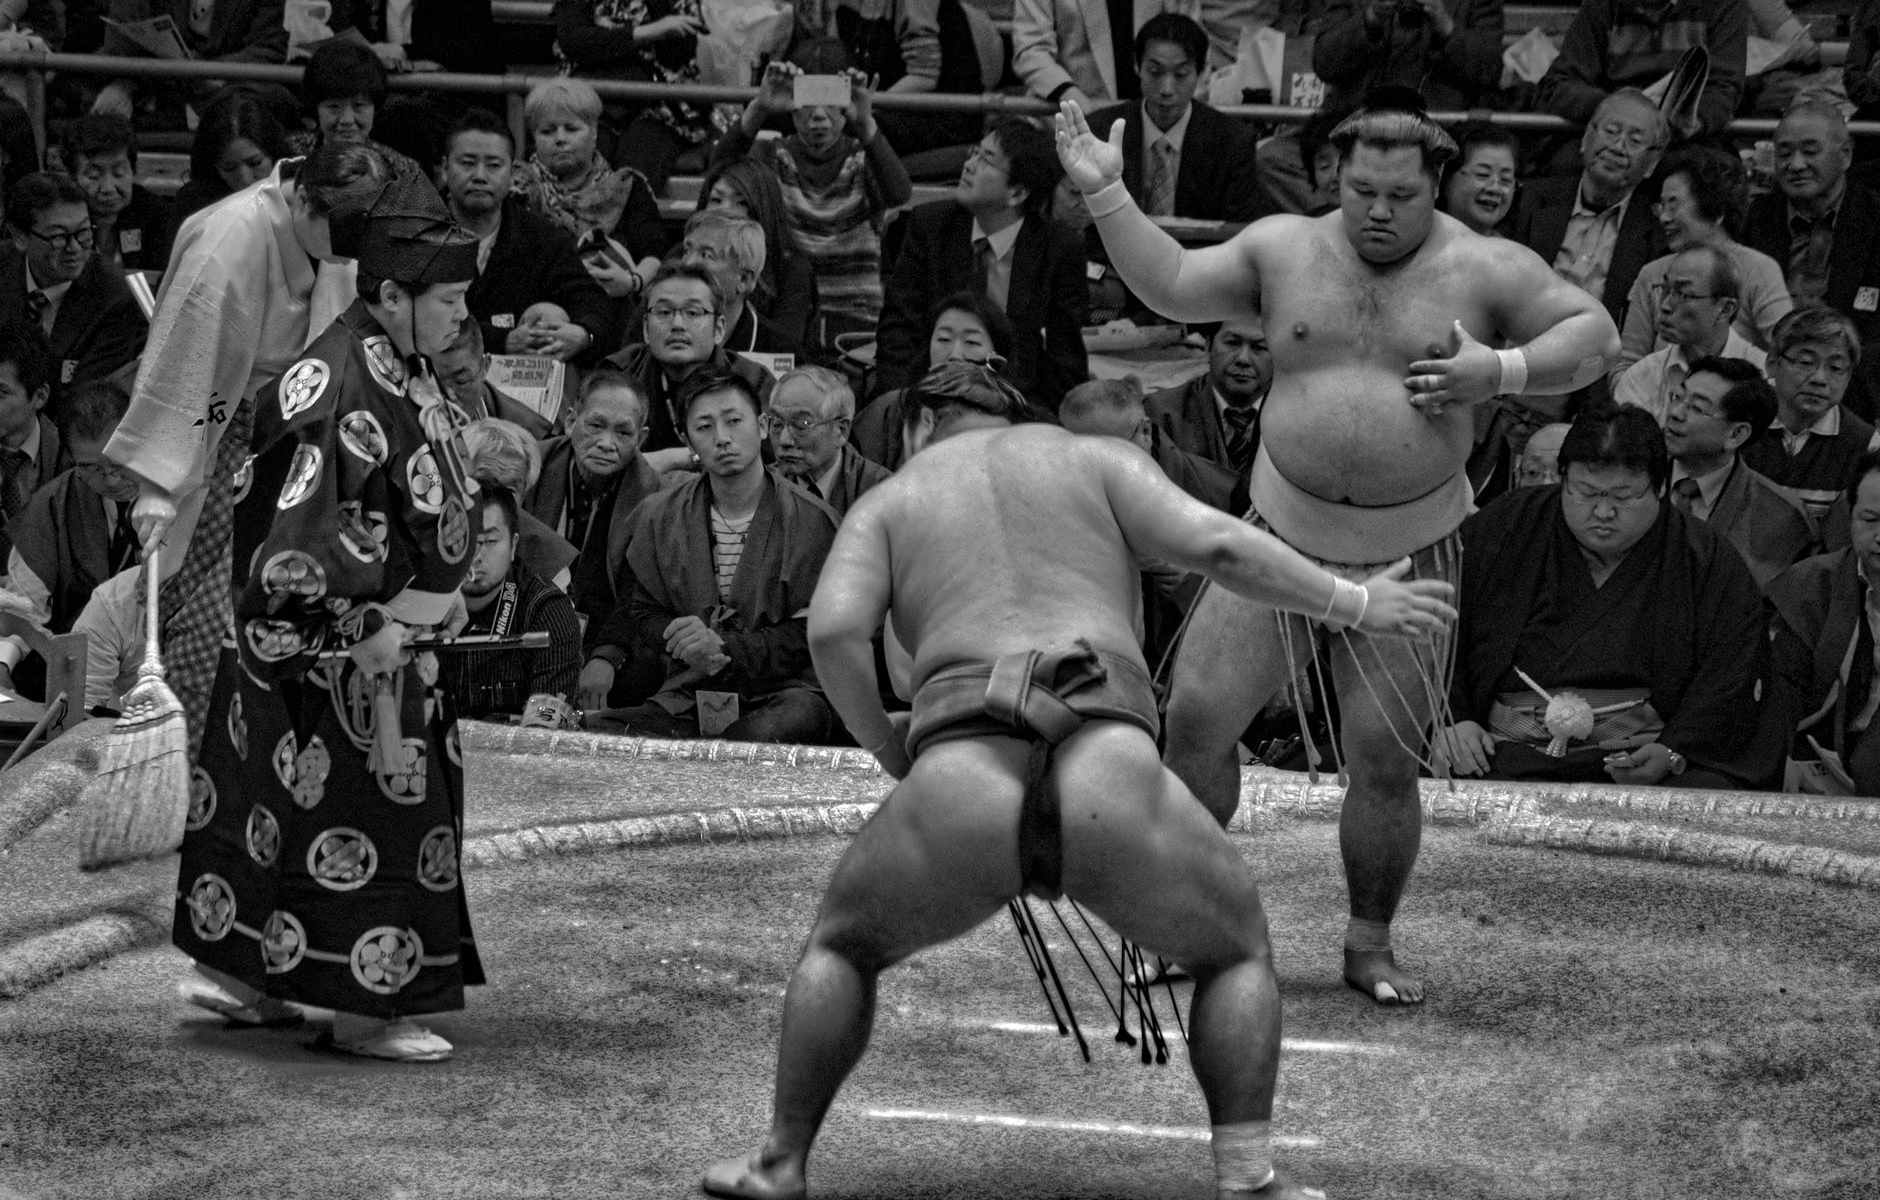 grayscale photo of a sumo wrestling match